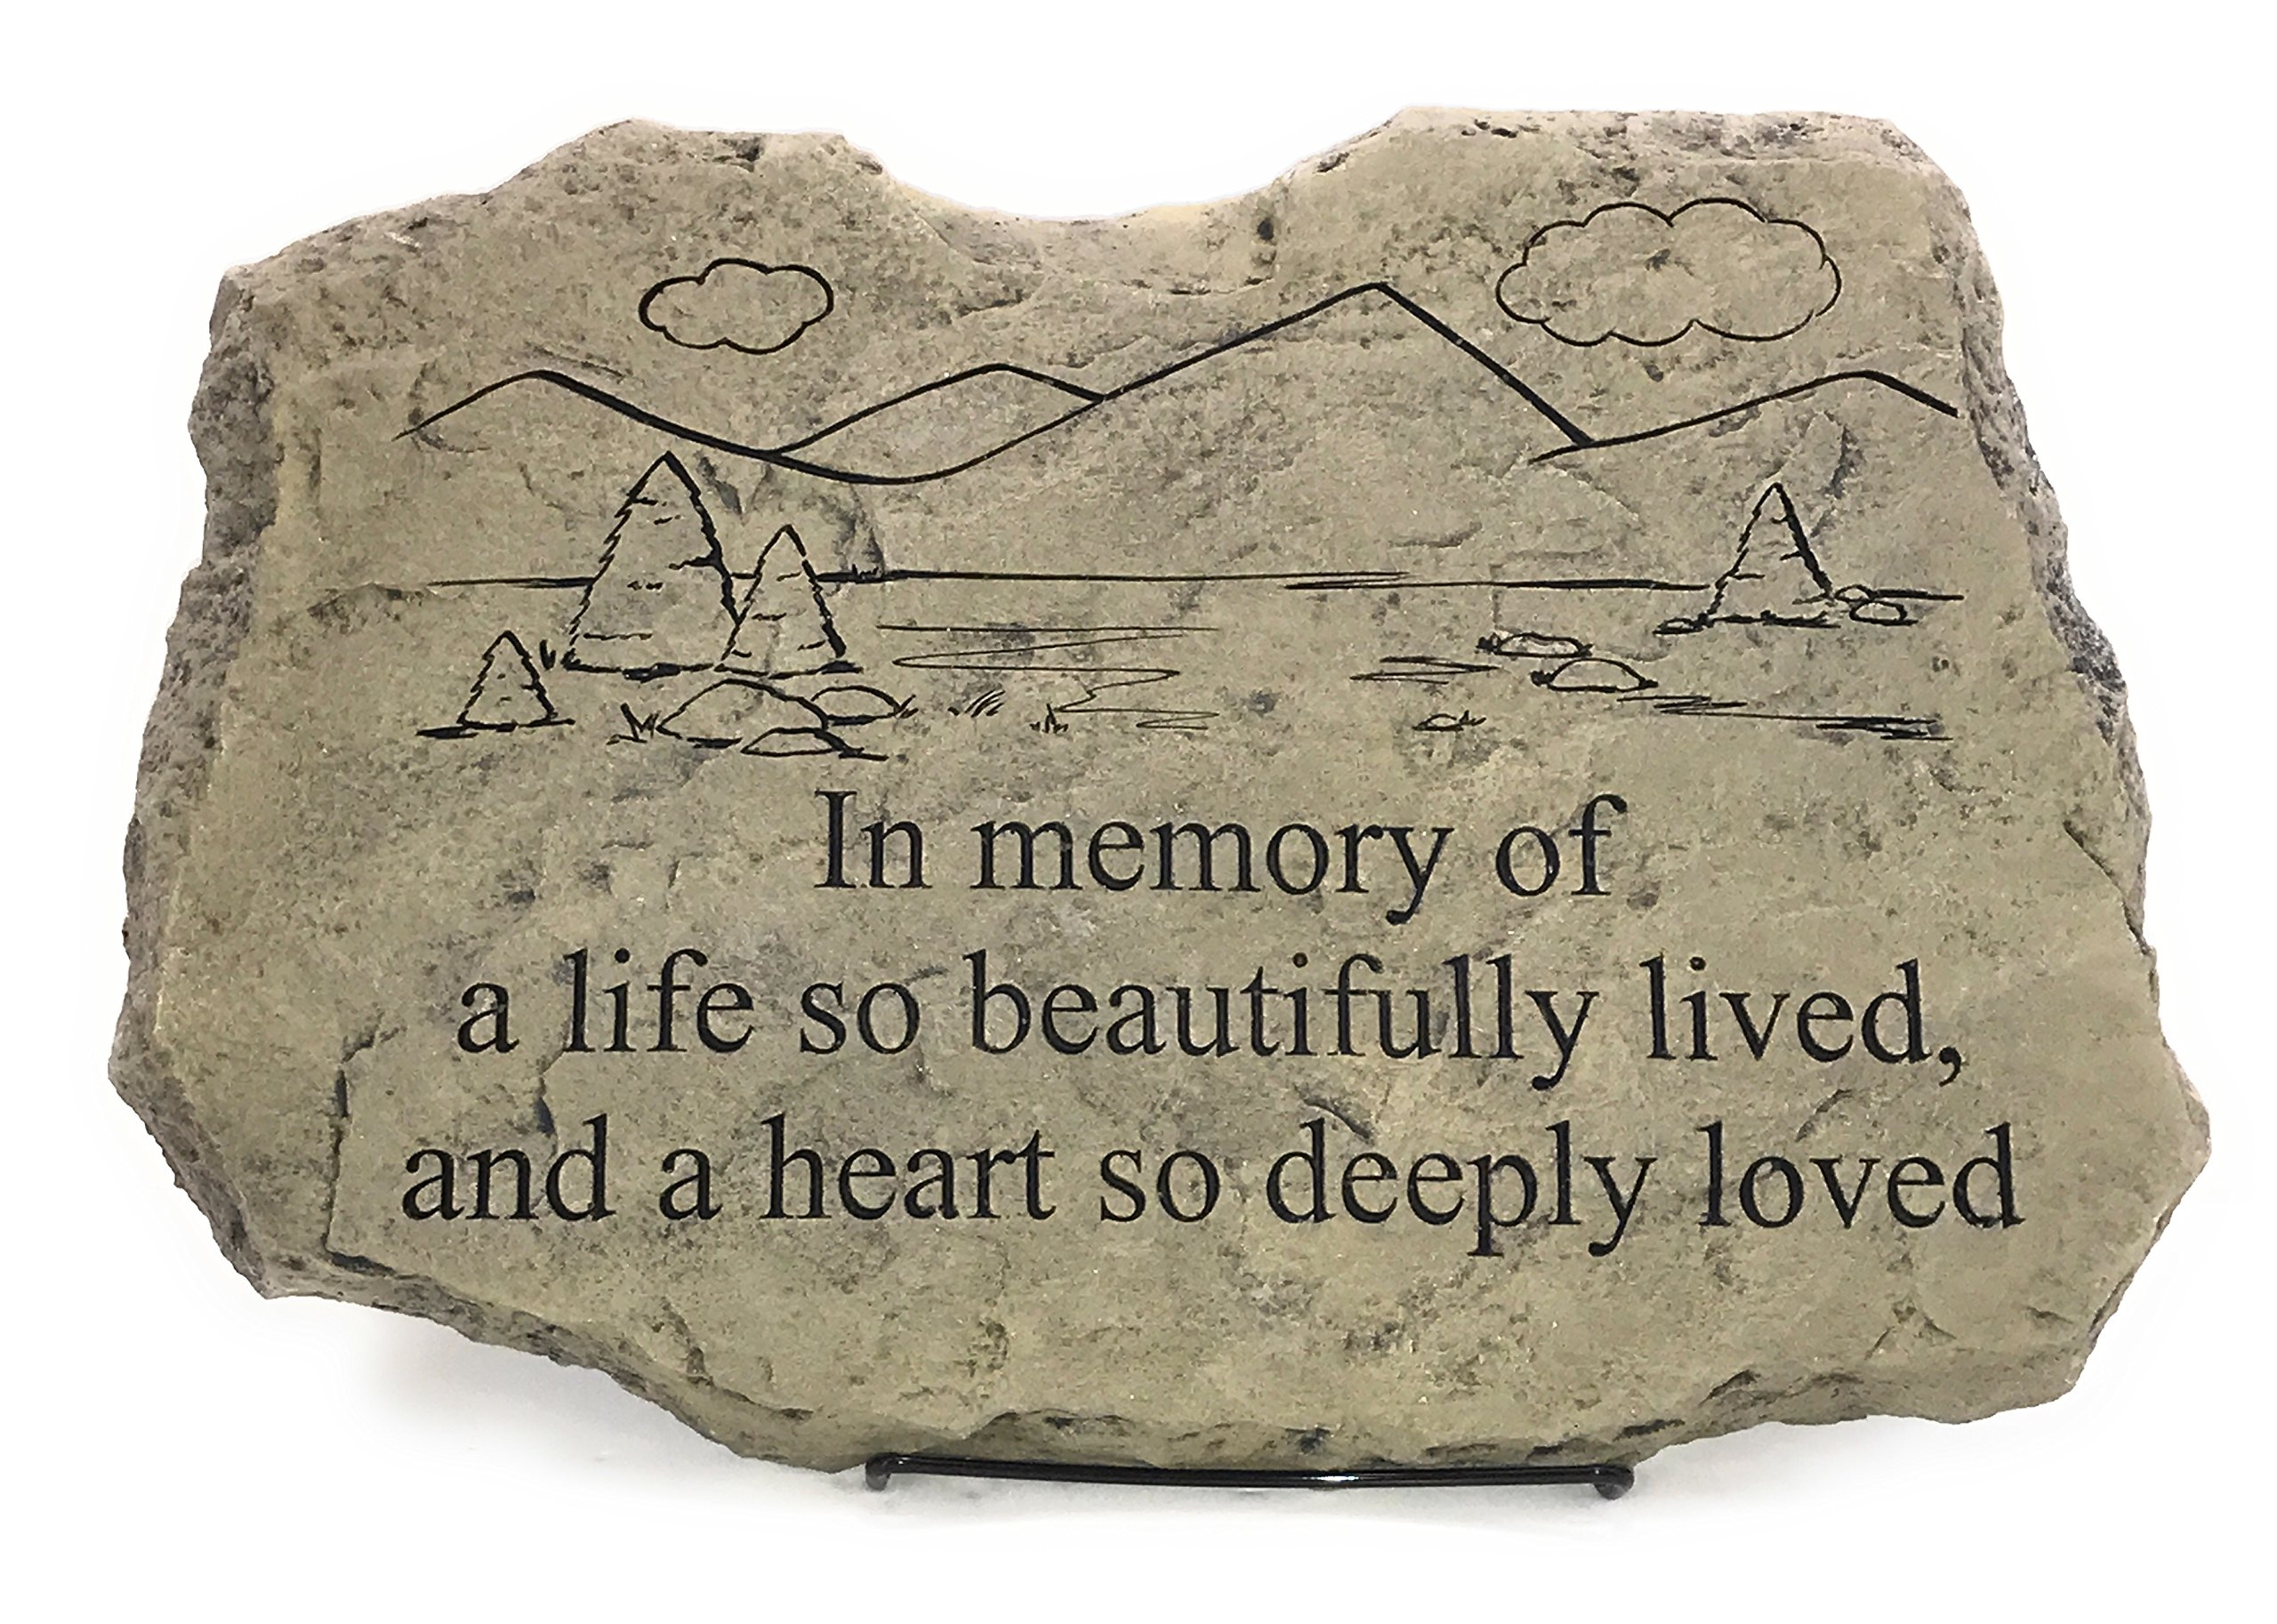 Kay Berry A Life So Beautifully Lived; Memorial Stone 10x15 OWW ;With Stand